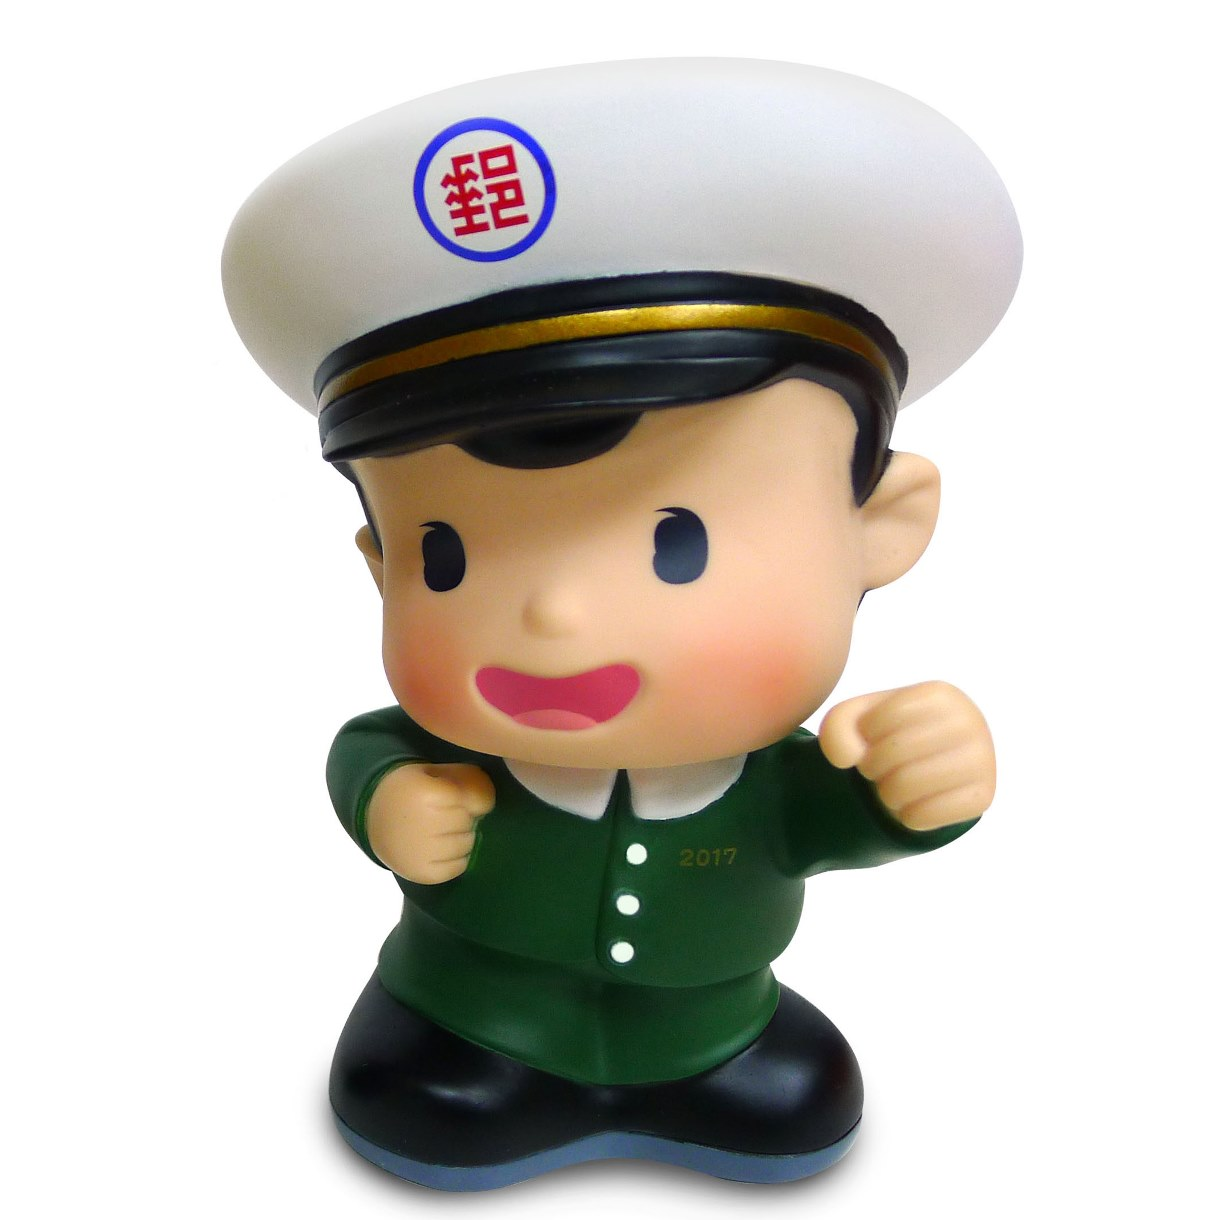 Postman Figure Male Doll (Issue of 2017)